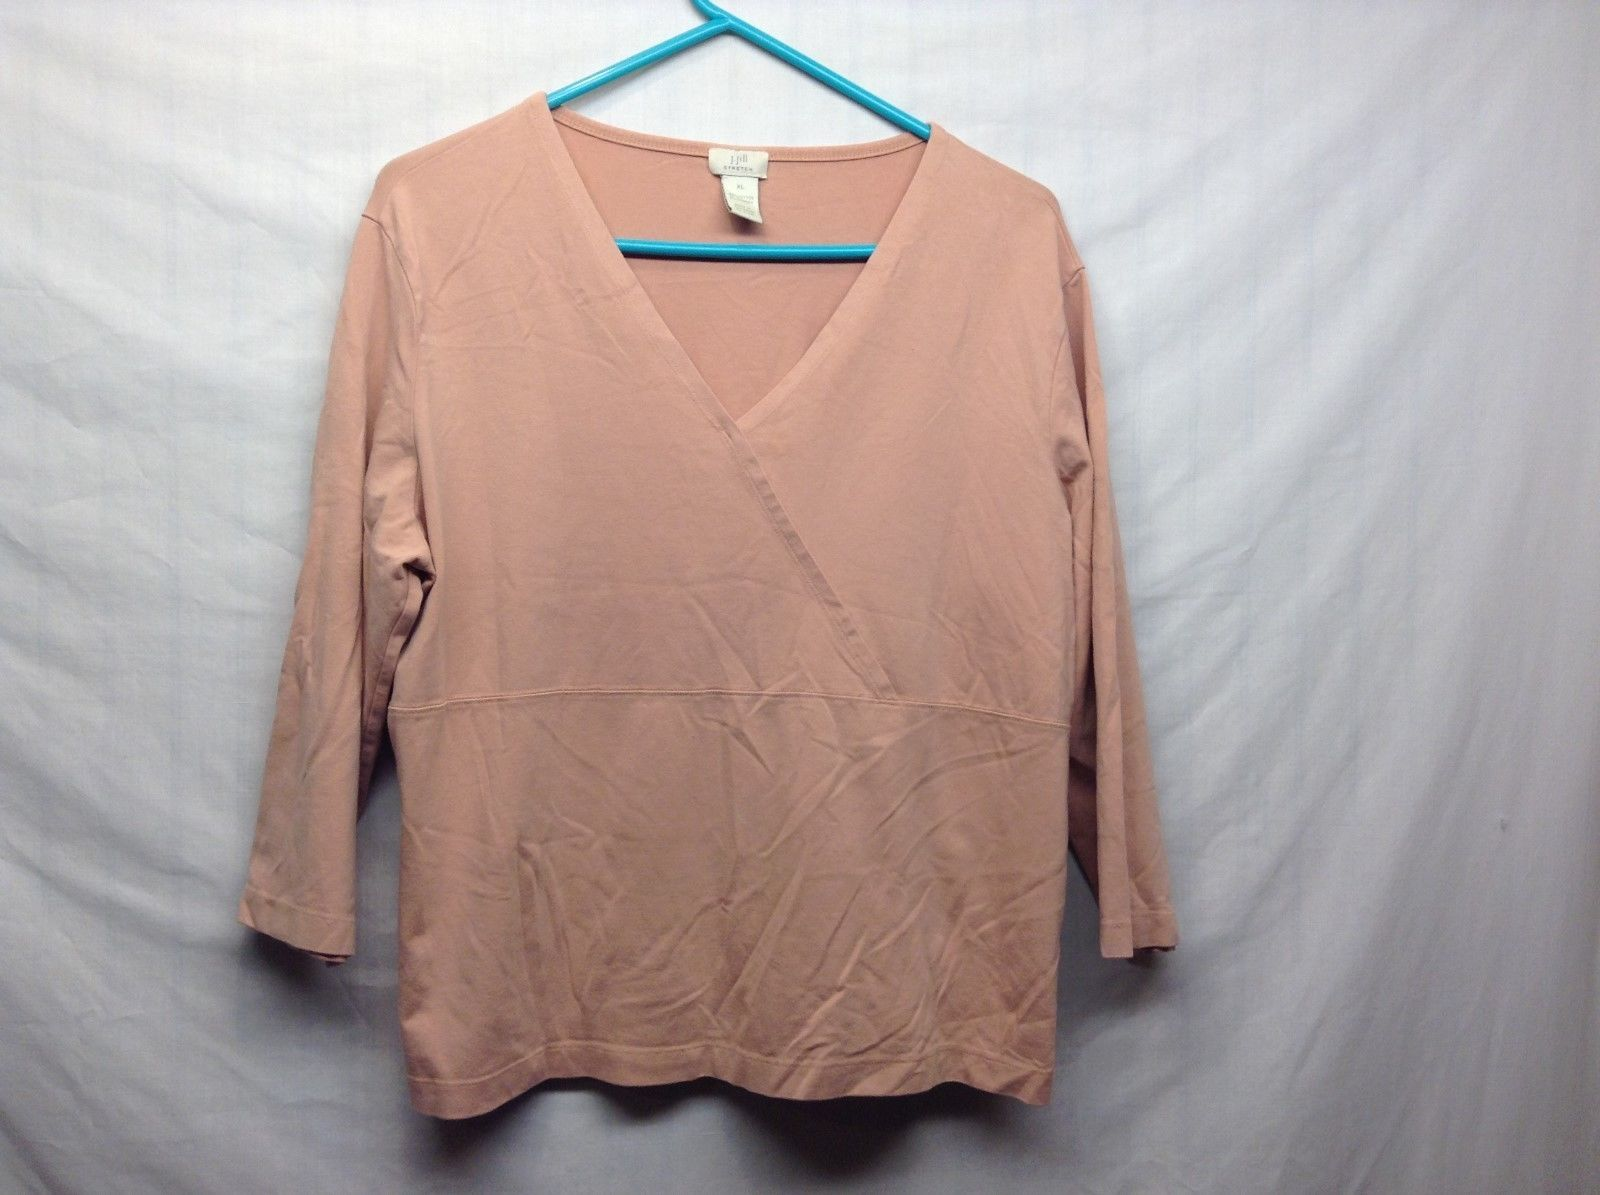 J.Jill V-Neck Salmon Colored 3/4 Sleeve Blouse Sz XL